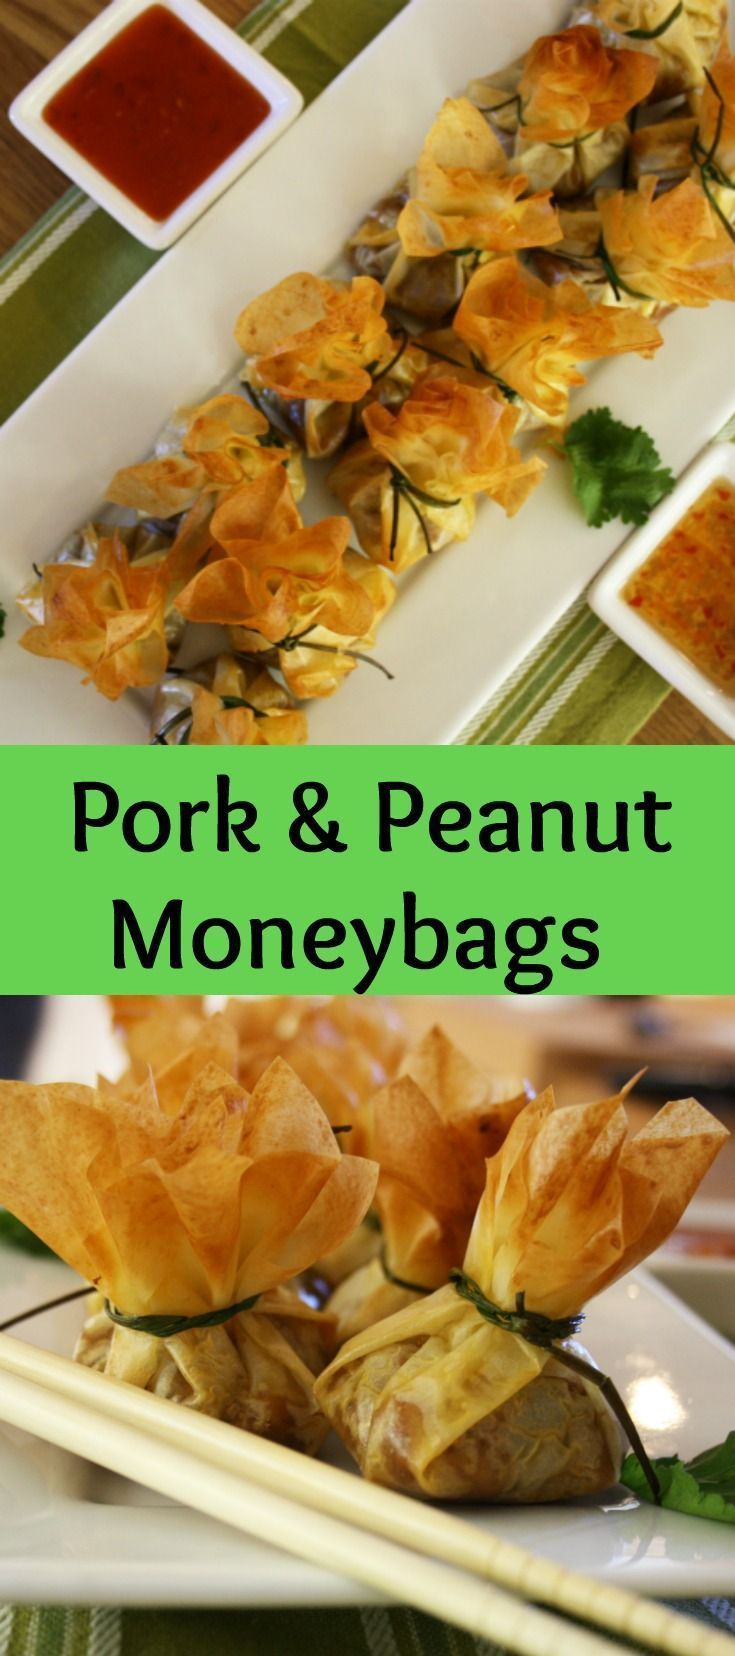 Pork and Peanut Moneybags. Pork mince, flavoured with Thai red curry paste, garlic, coriander and peanut butter and baked in filo moneybags tied with chives.